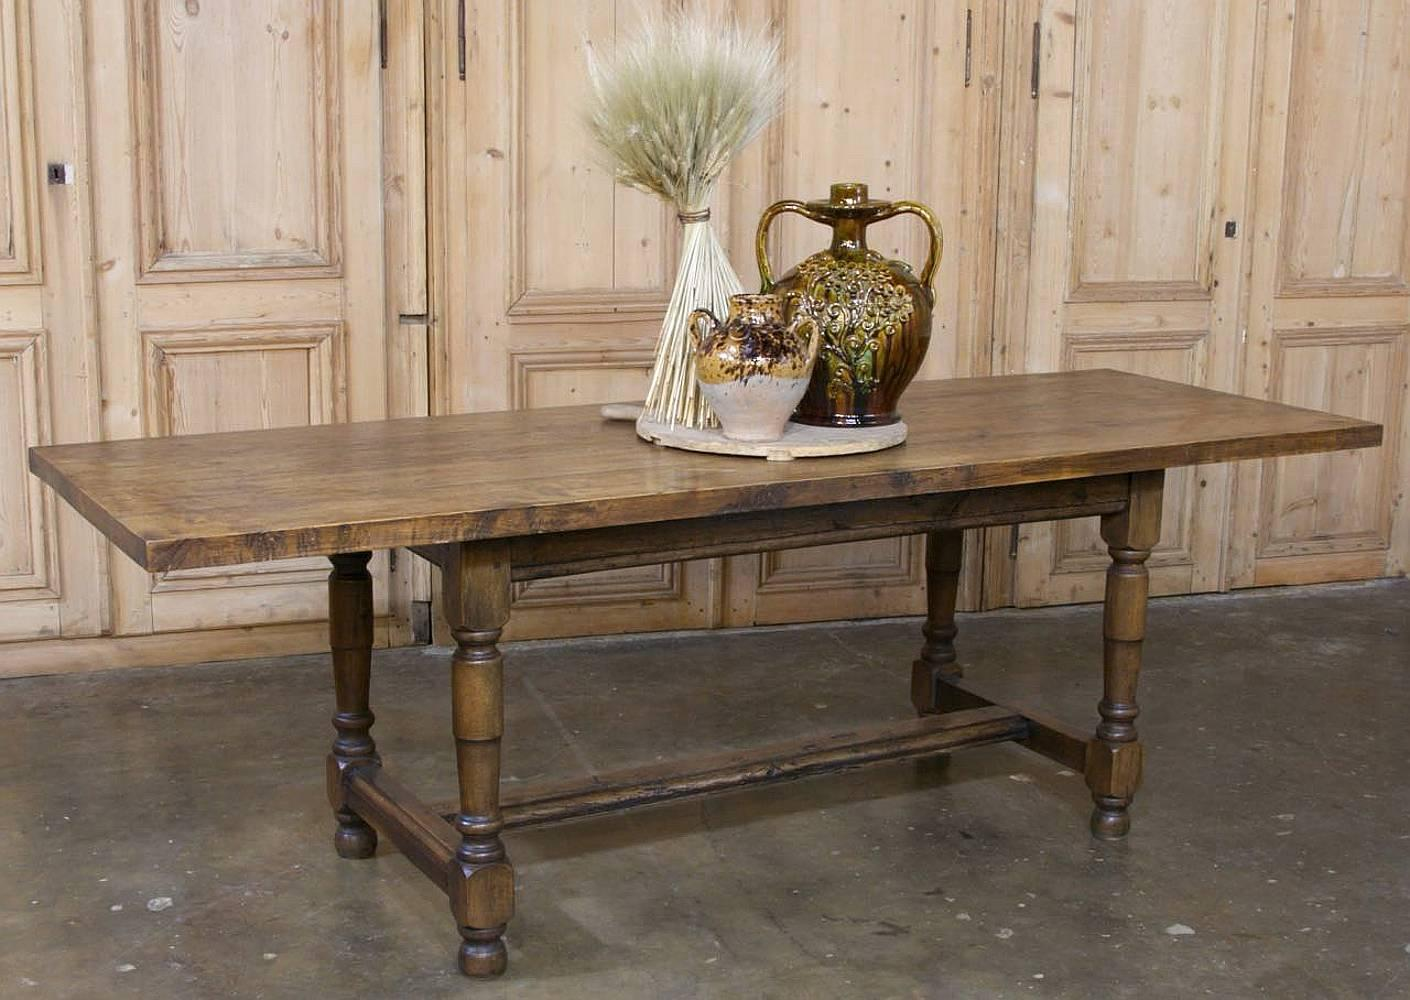 Early 19th Century Rustic Country French Farm Table At 1stdibs